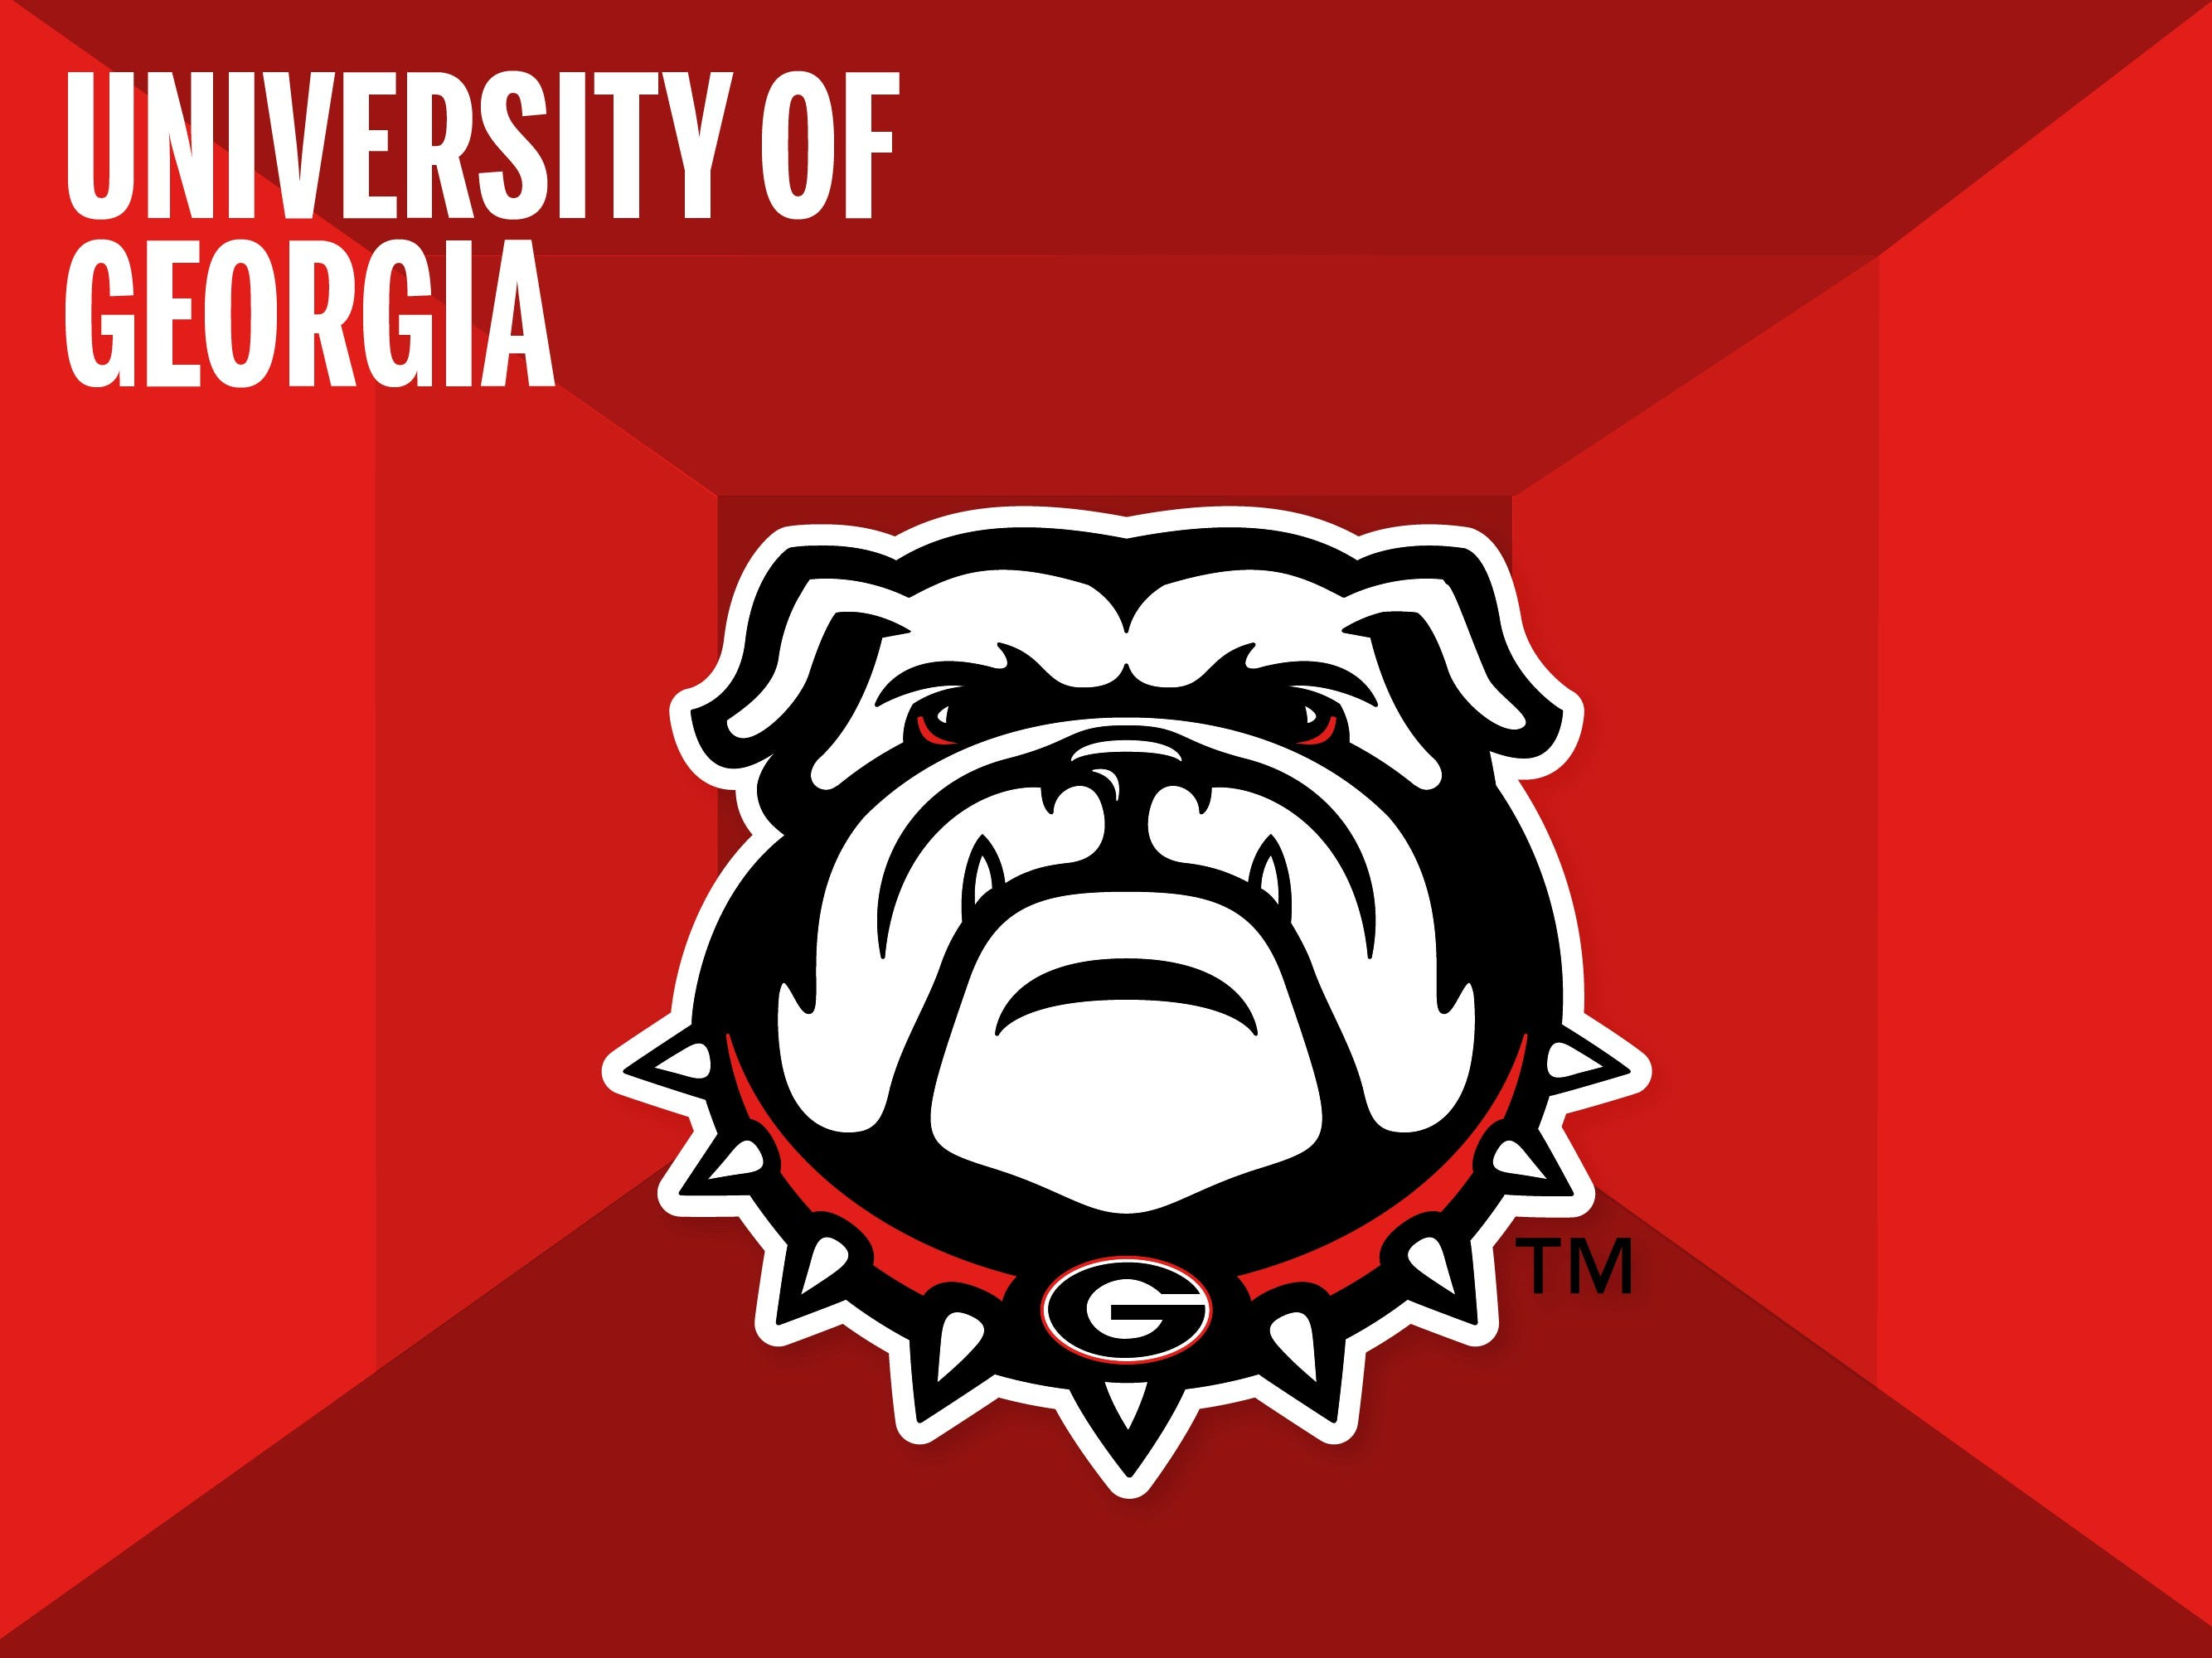 University of Georgia College Football Shop